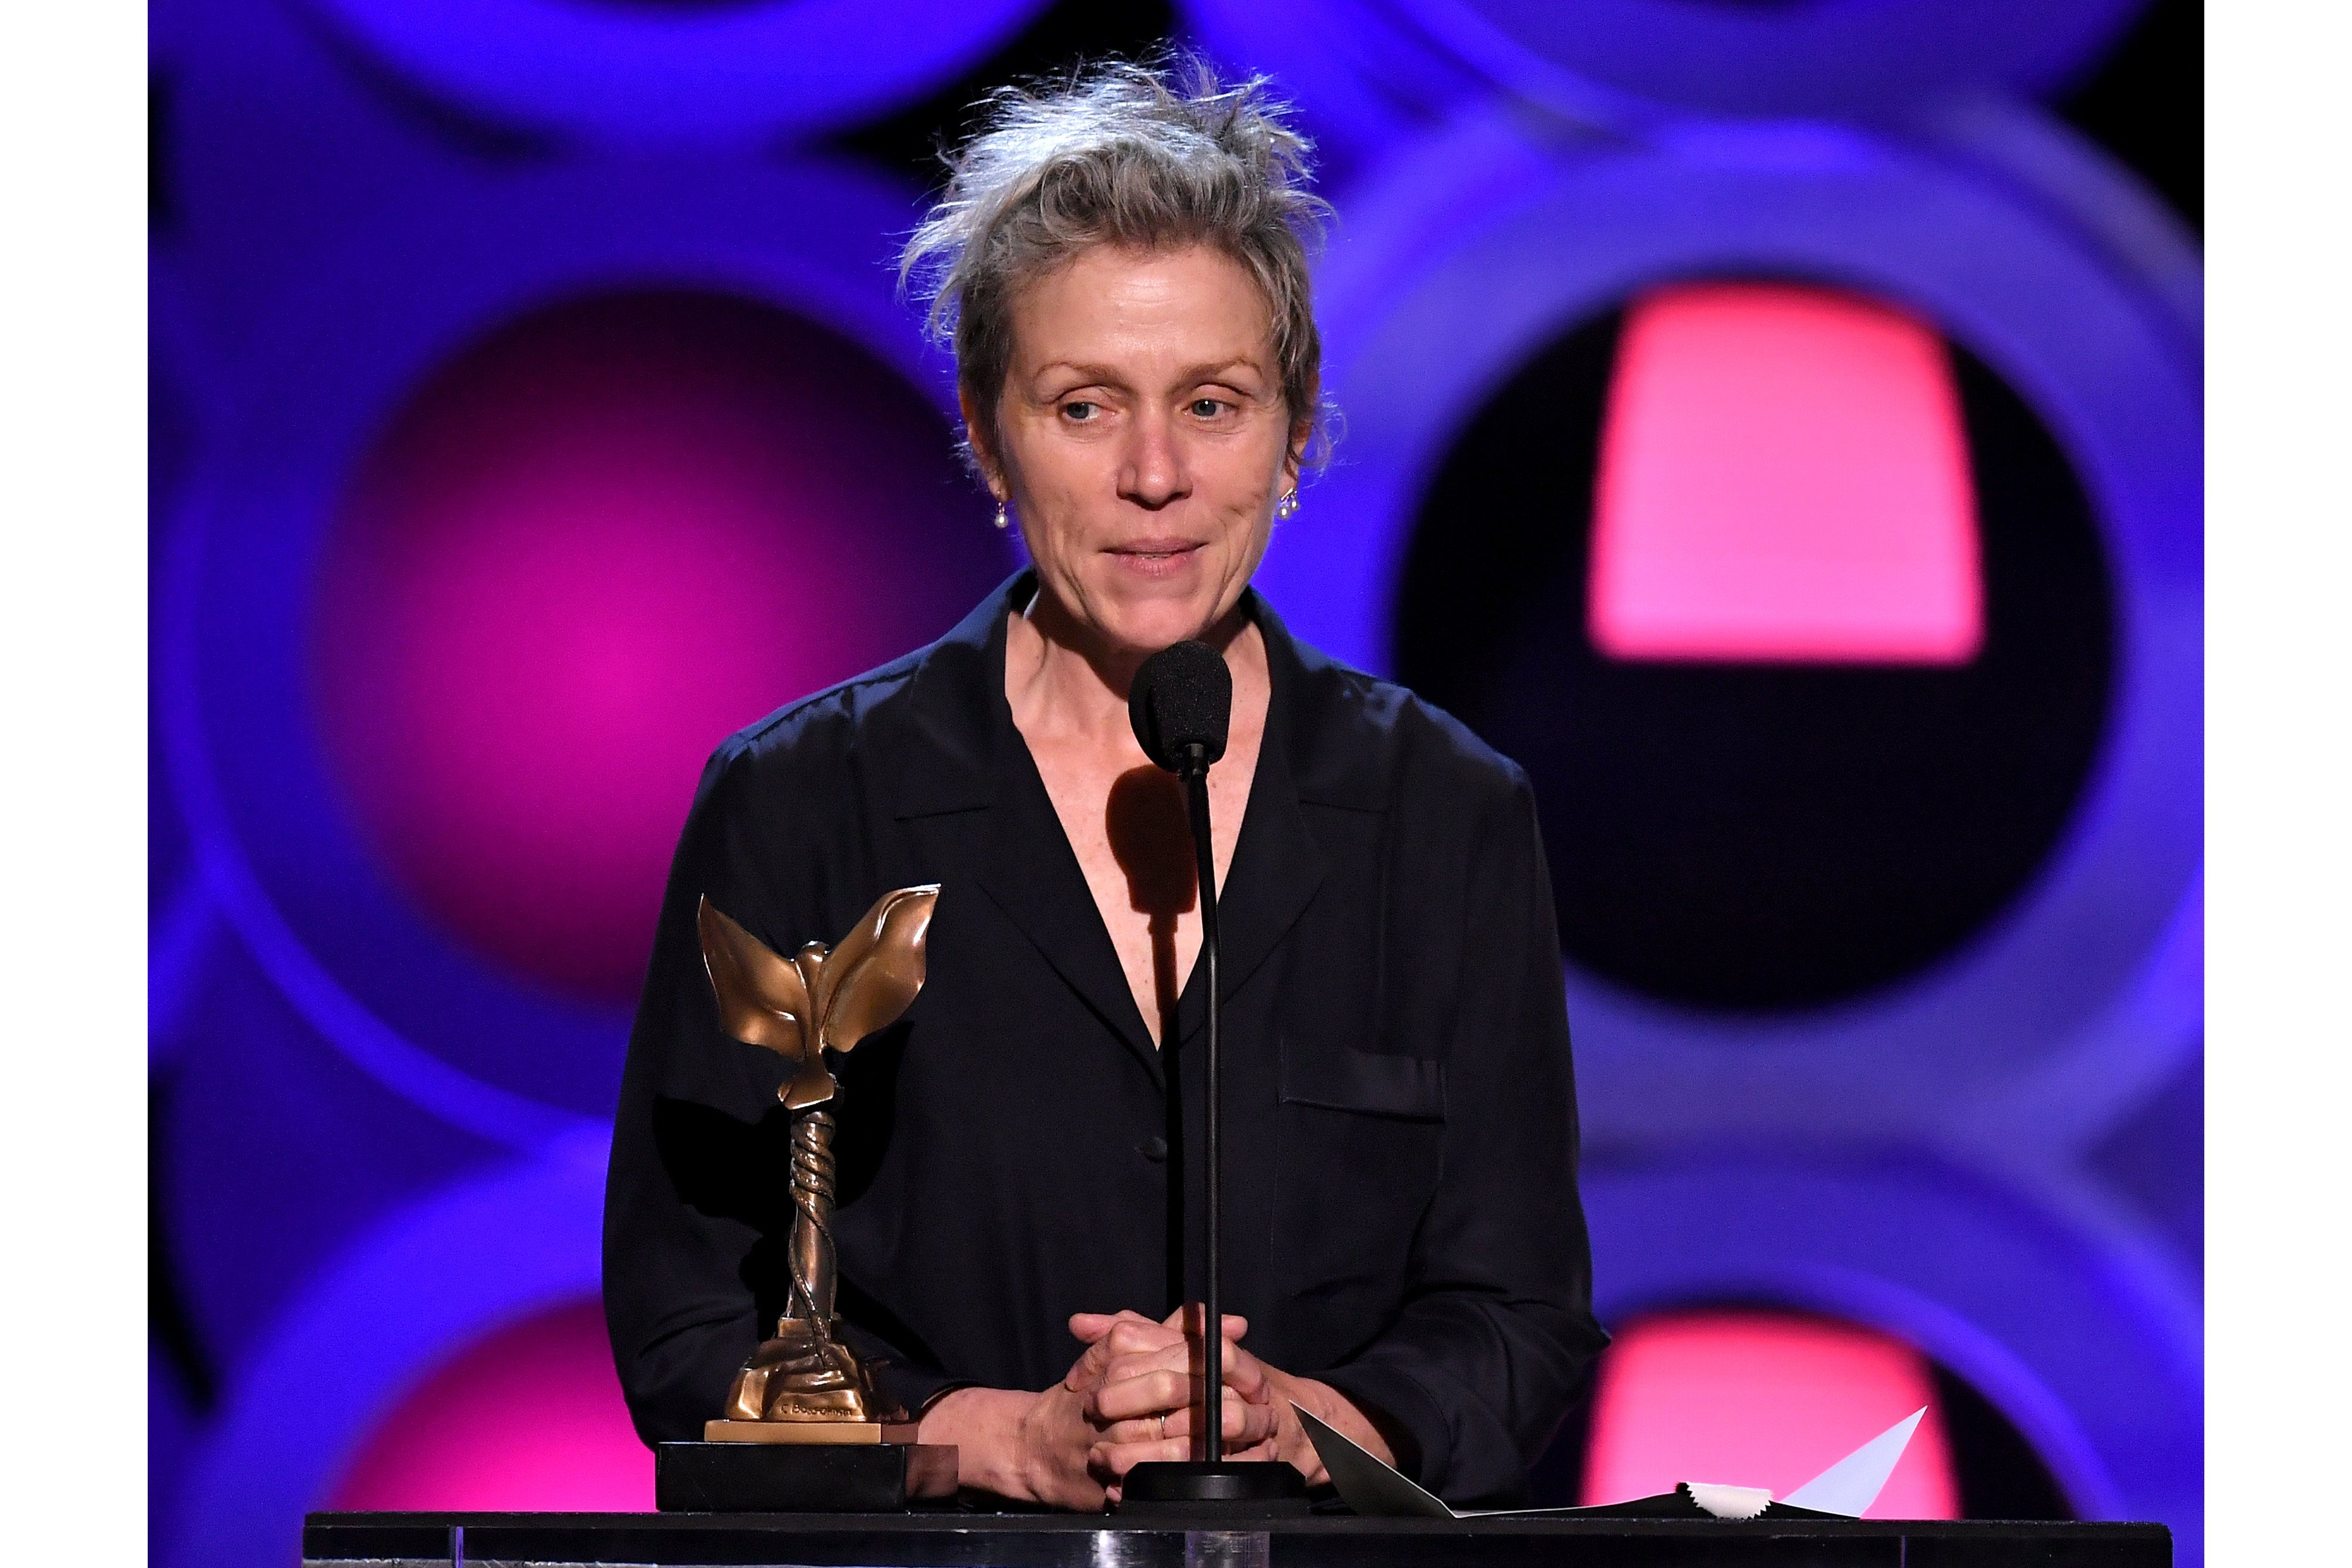 Mandatory Credit: Photo by Rob Latour/Variety/Shutterstock (9447411in) Frances McDormand, 'Three Billboards Outside Ebbing, Missouri' - Best Female Lead 33rd Film Independent Spirit Awards, Show, Los Angeles, USA - 03 Mar 2018